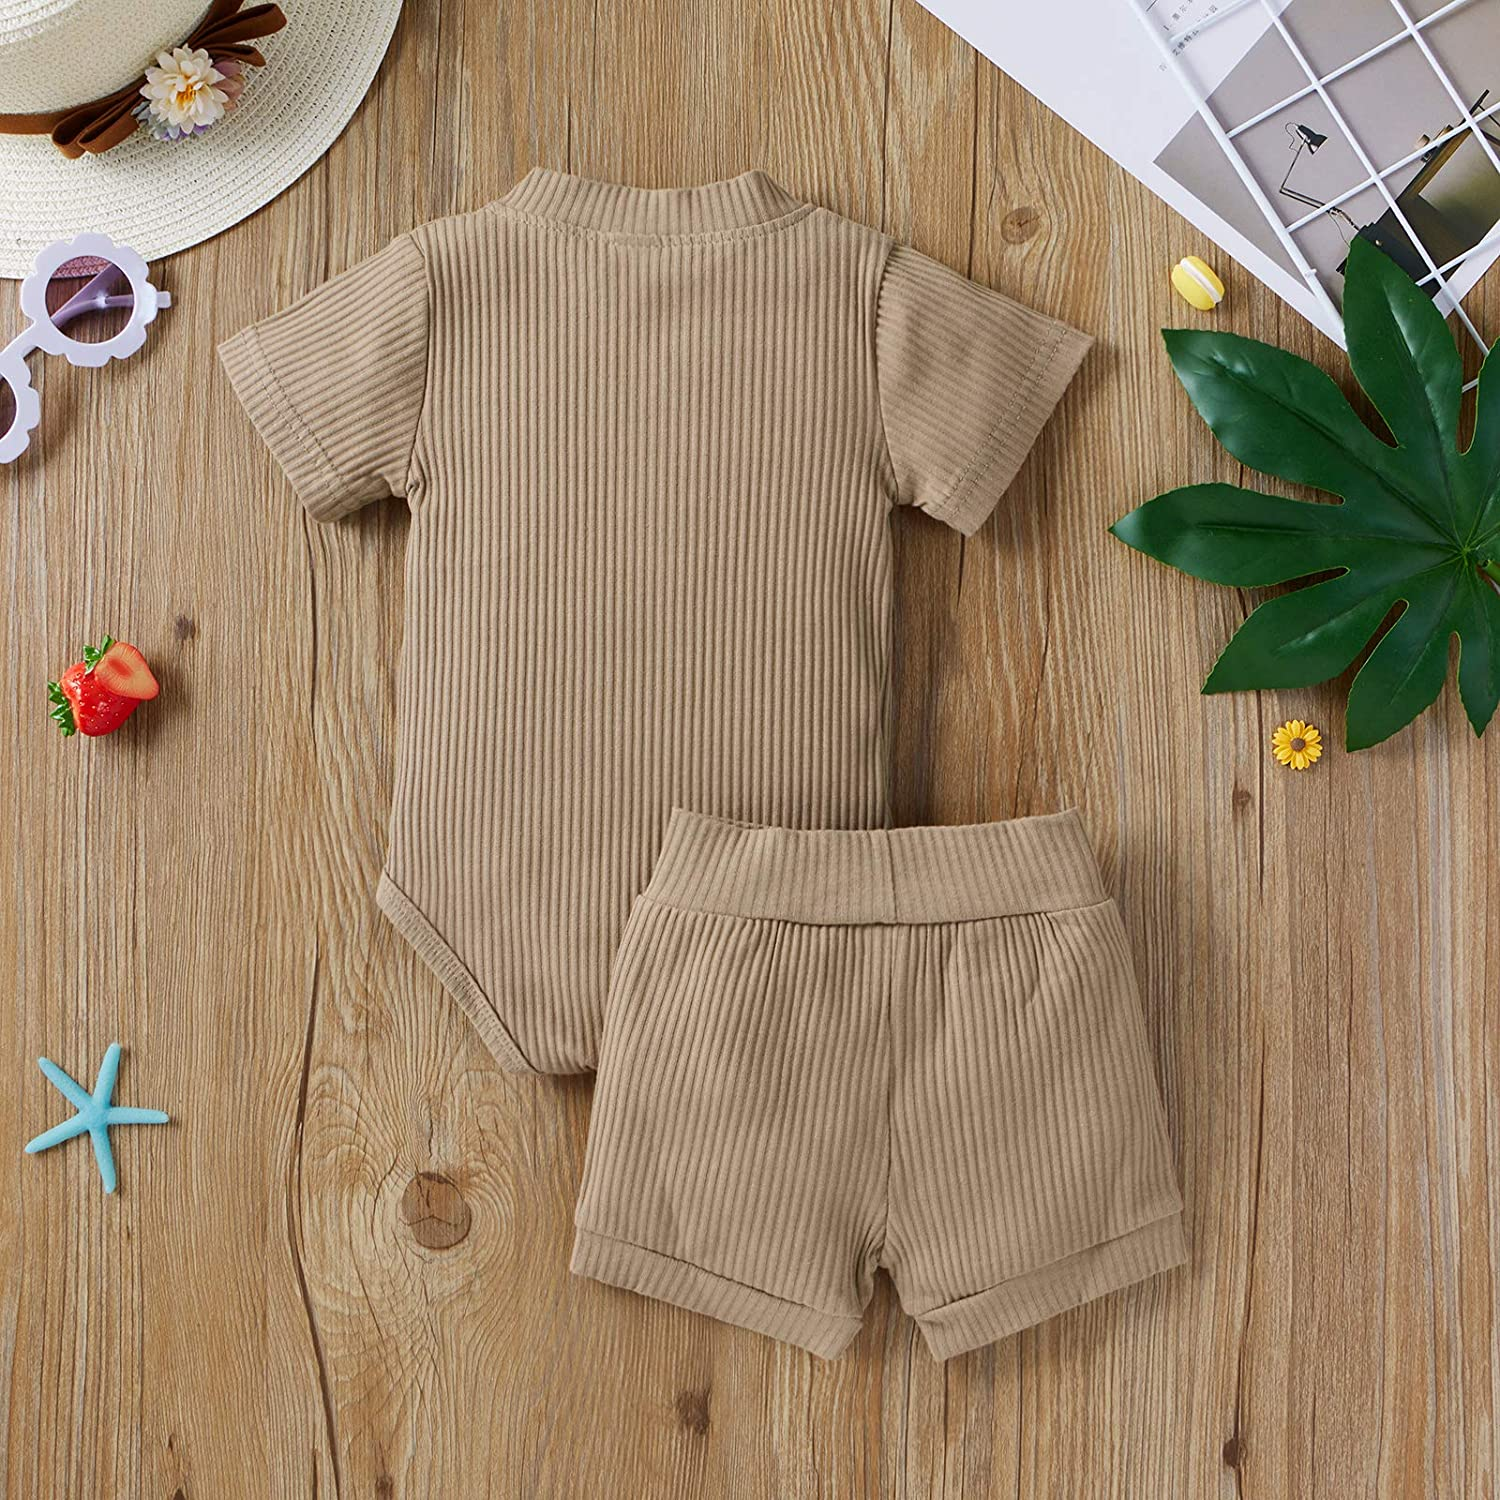 Baby Boy Girl Summer Clothes Pajamas Sets Unisex Toddler Matching Outfits Romper Top and Shorts